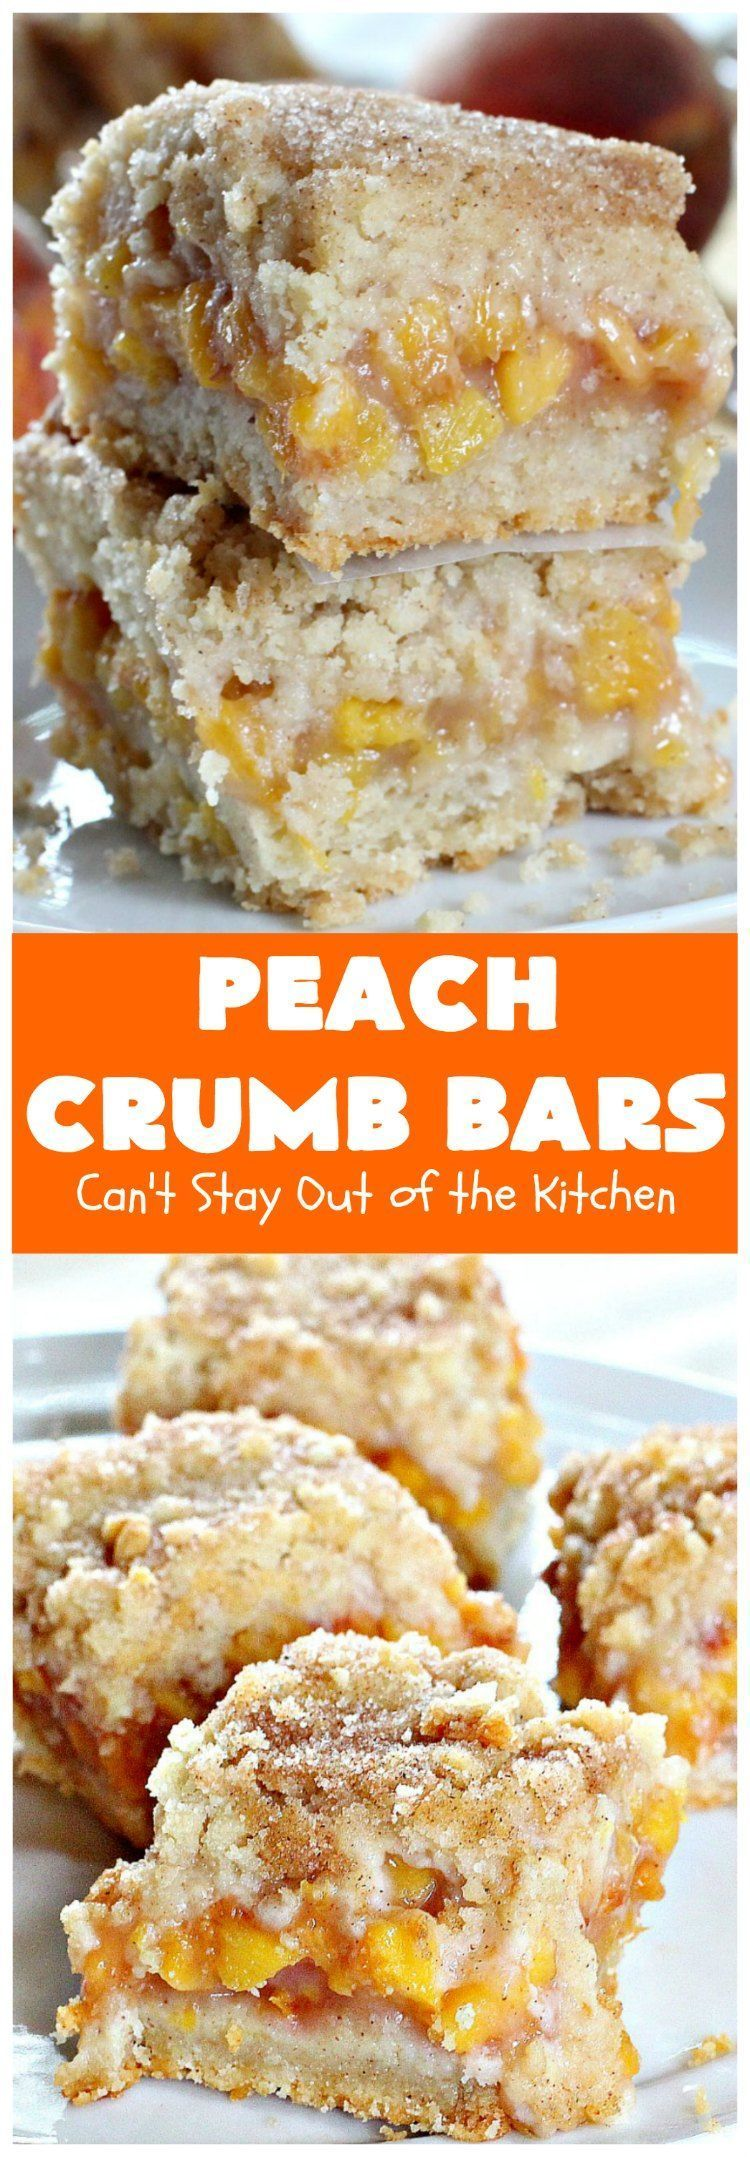 Peach Crumb Bars  Cant Stay Out of the Kitchen  these fabulous bars are some of the best with Ive ever eaten The topping with sugar just melts in your mouth We loved thes...